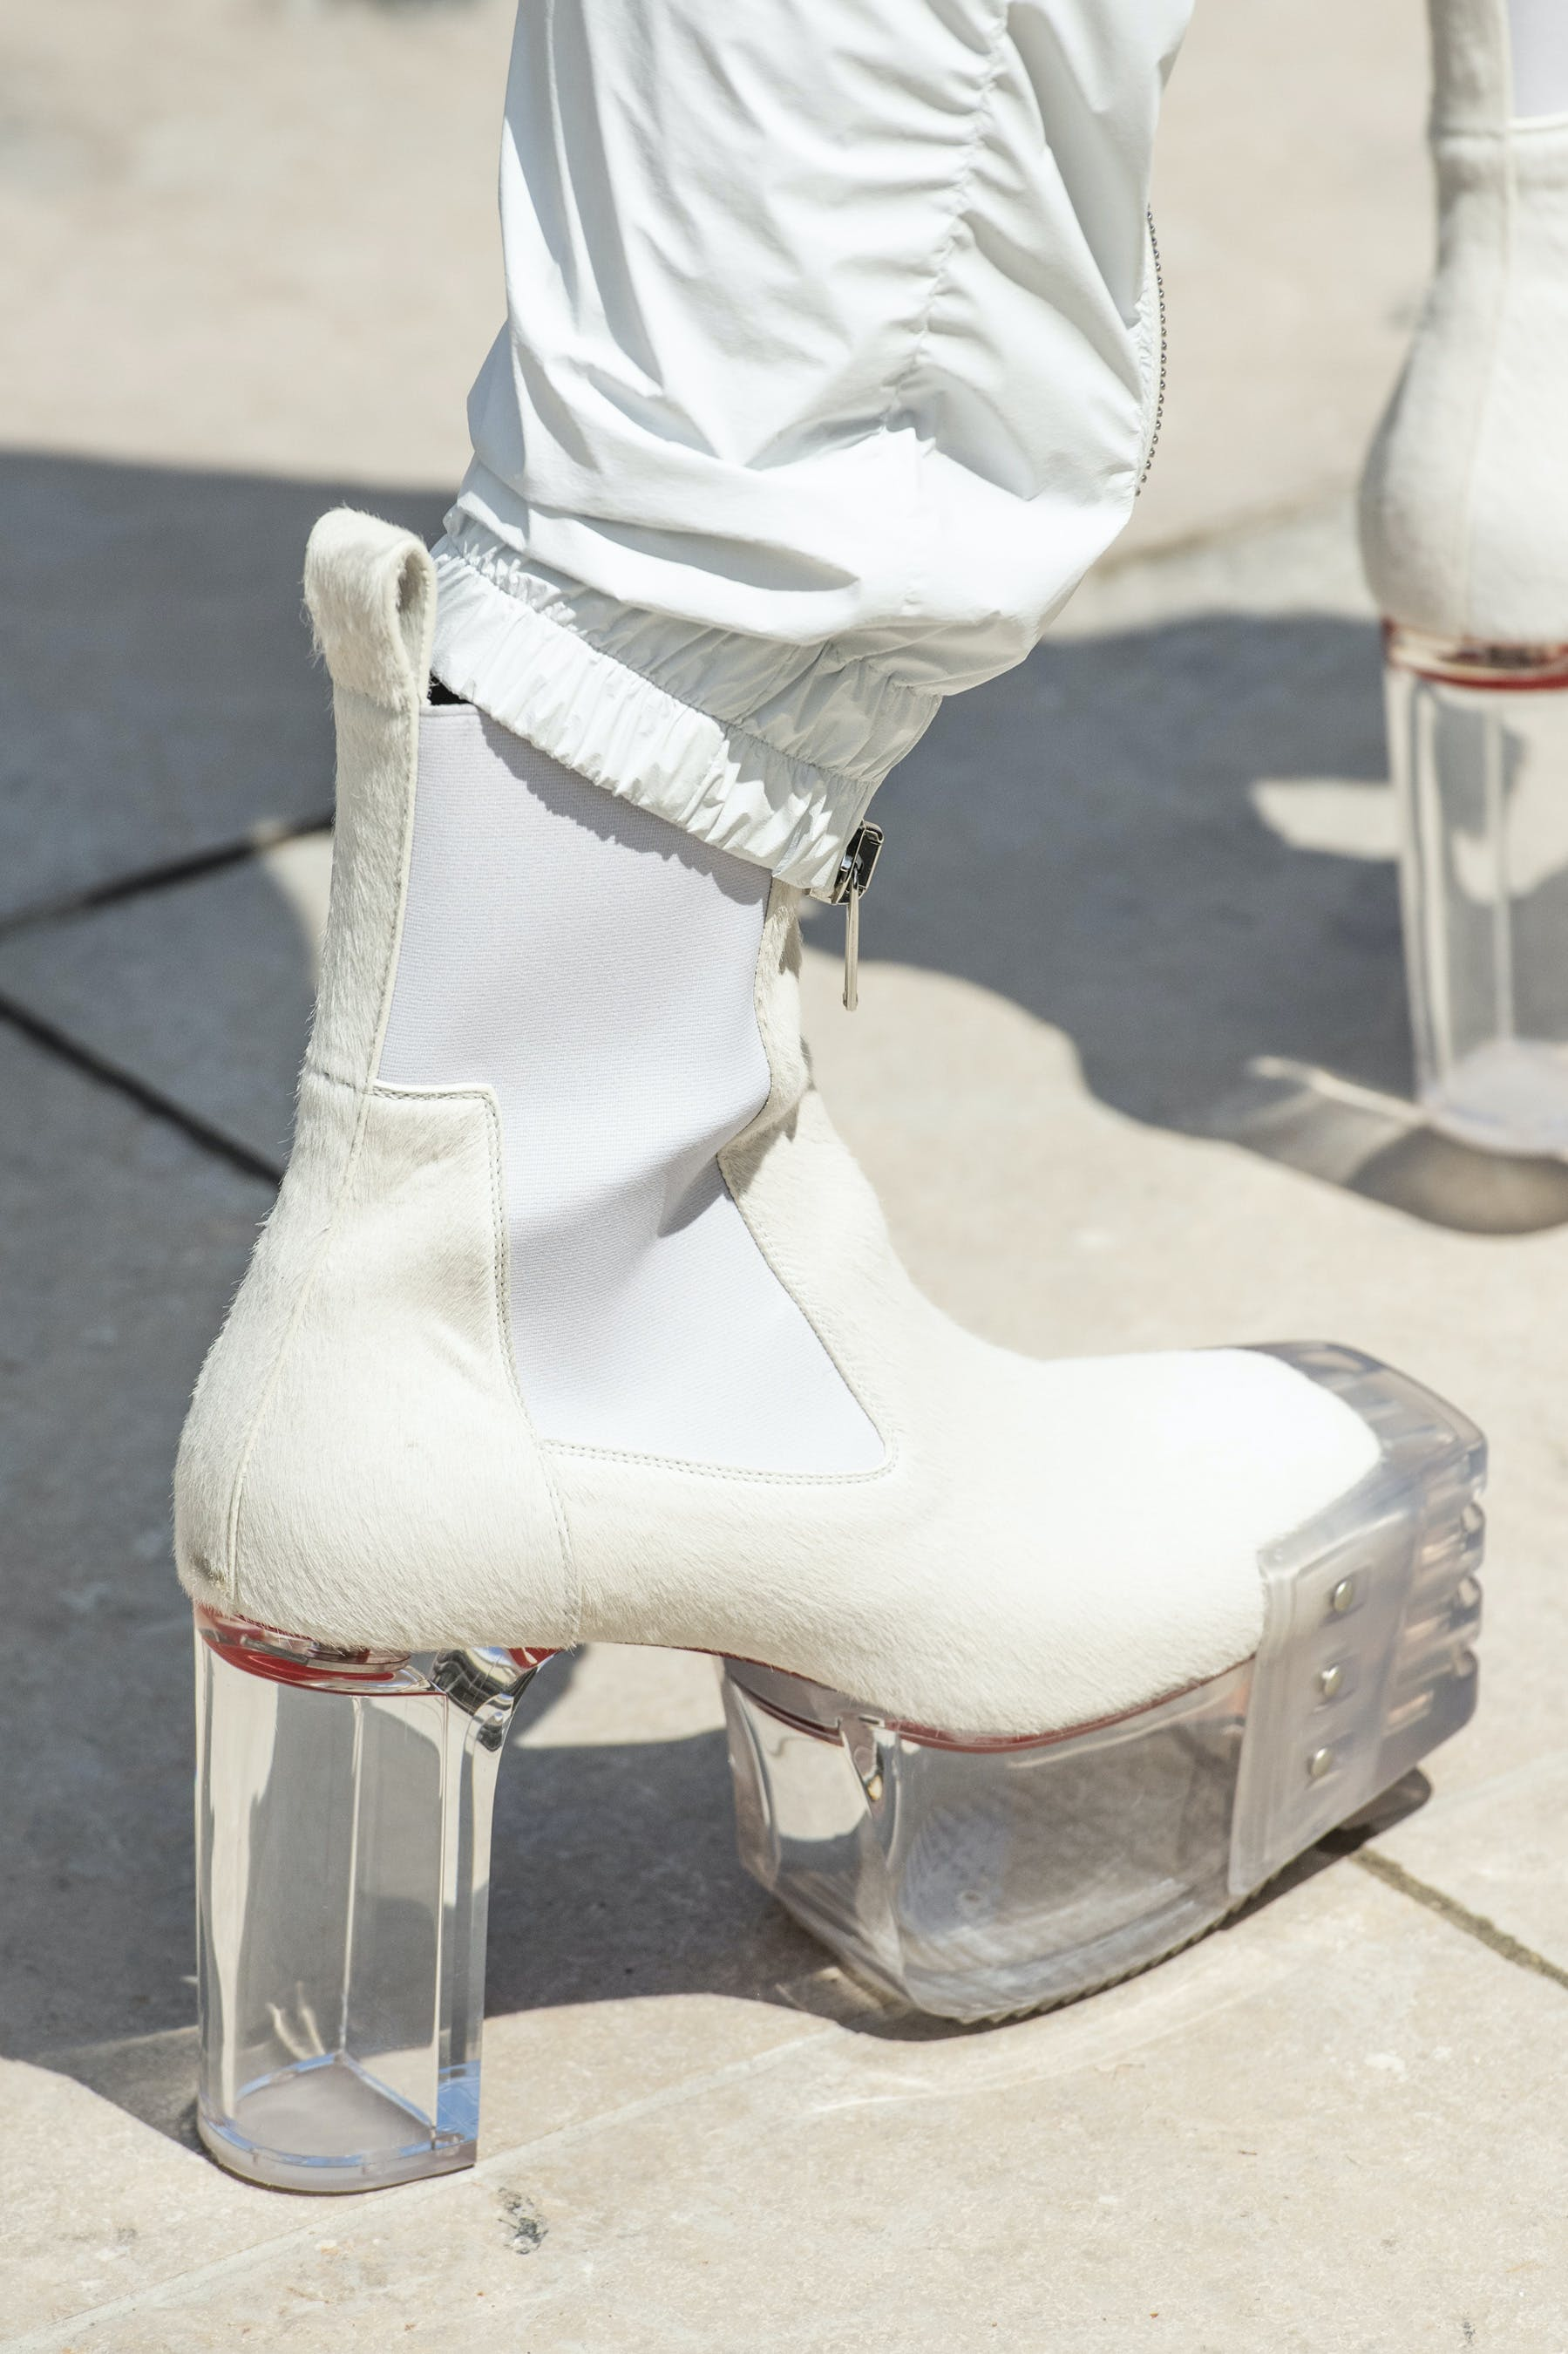 Rick Owens Runway Details Elastic Kiss Grill Boots In White With Transparent Heel Back View Mens SS20 Tecautl